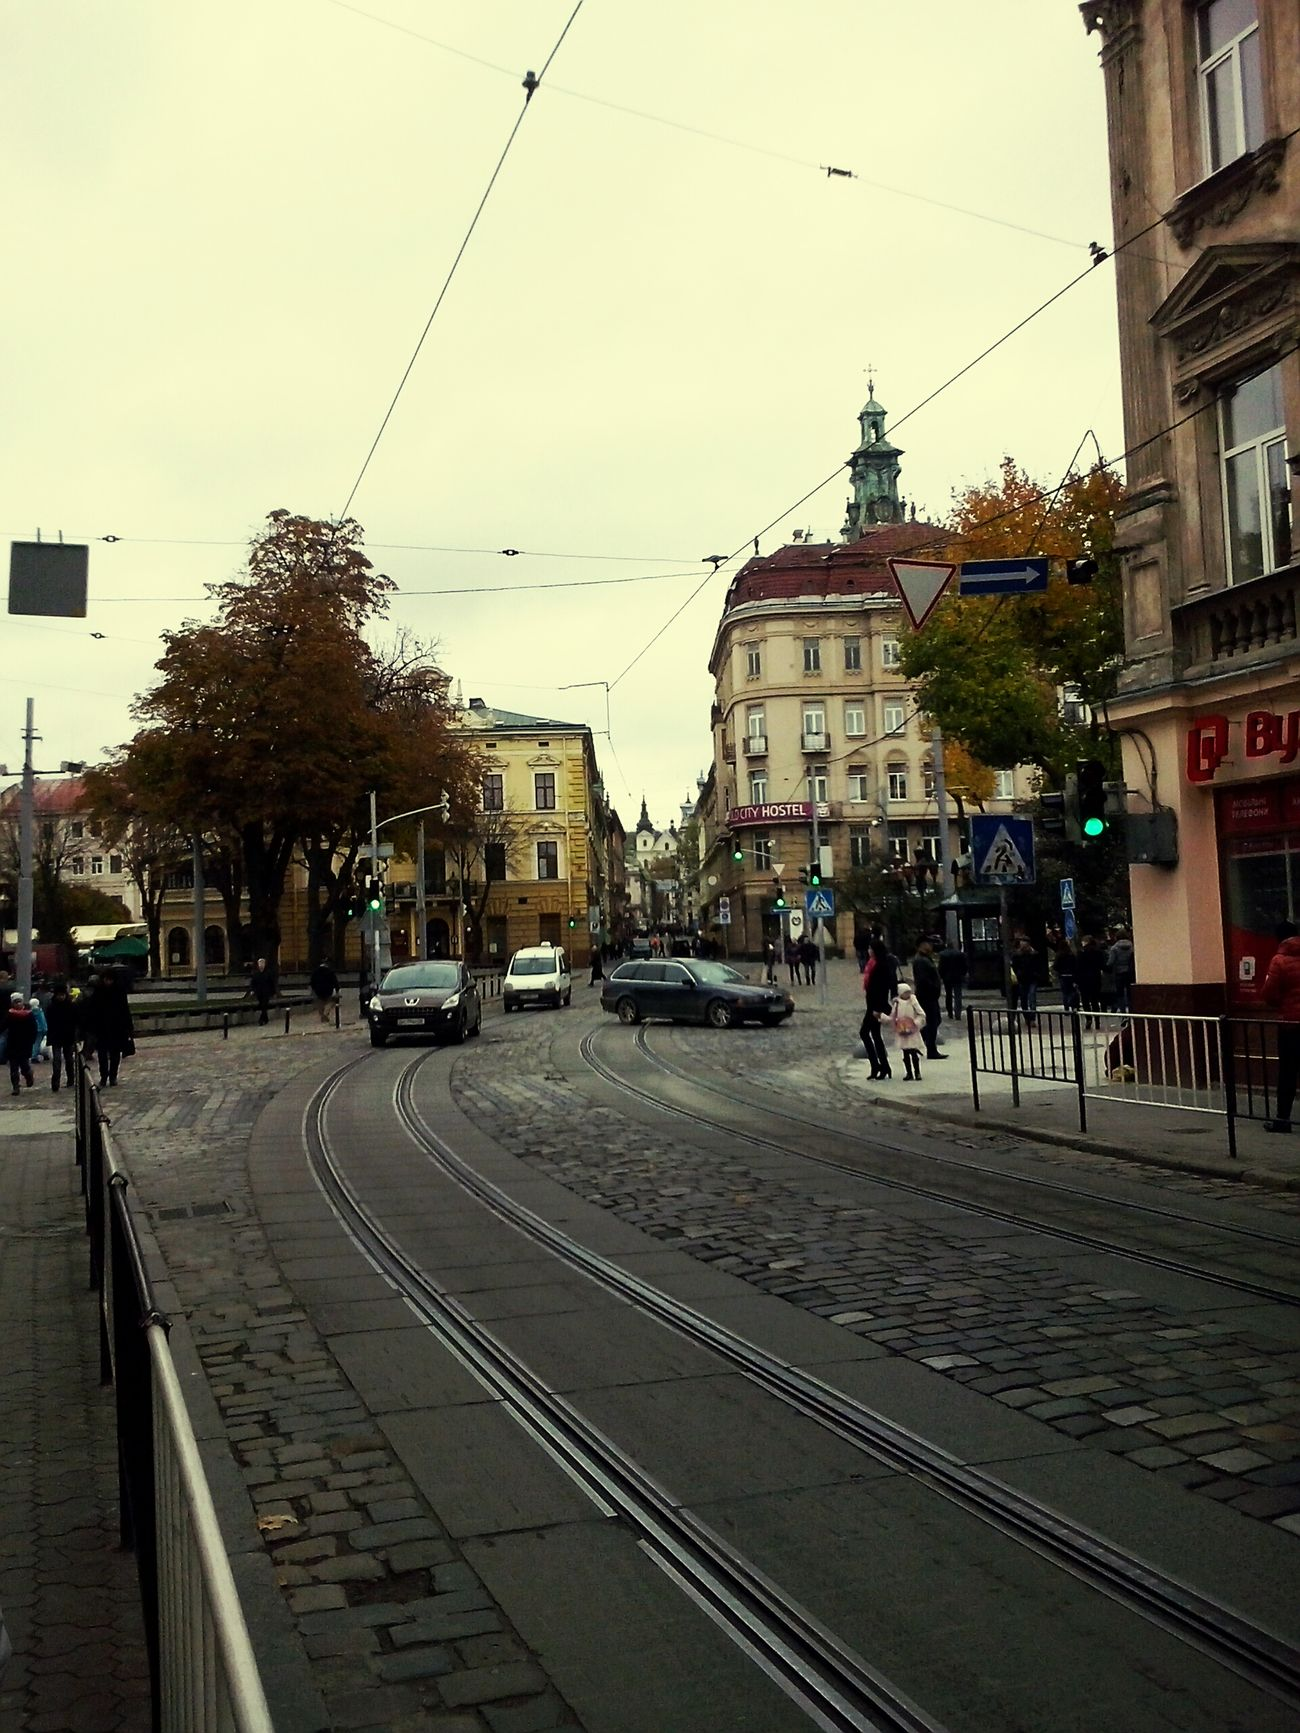 Enjoy The New Normal Lviv, Ukraine City Street City Street Sky Railroad Track Building Exterior Outdoors Architecture Built Structure No People Public Transportation Day LvivUkraine Lvivforyou Good Trip Good Travel Car Train Adapted To The City Miles Away